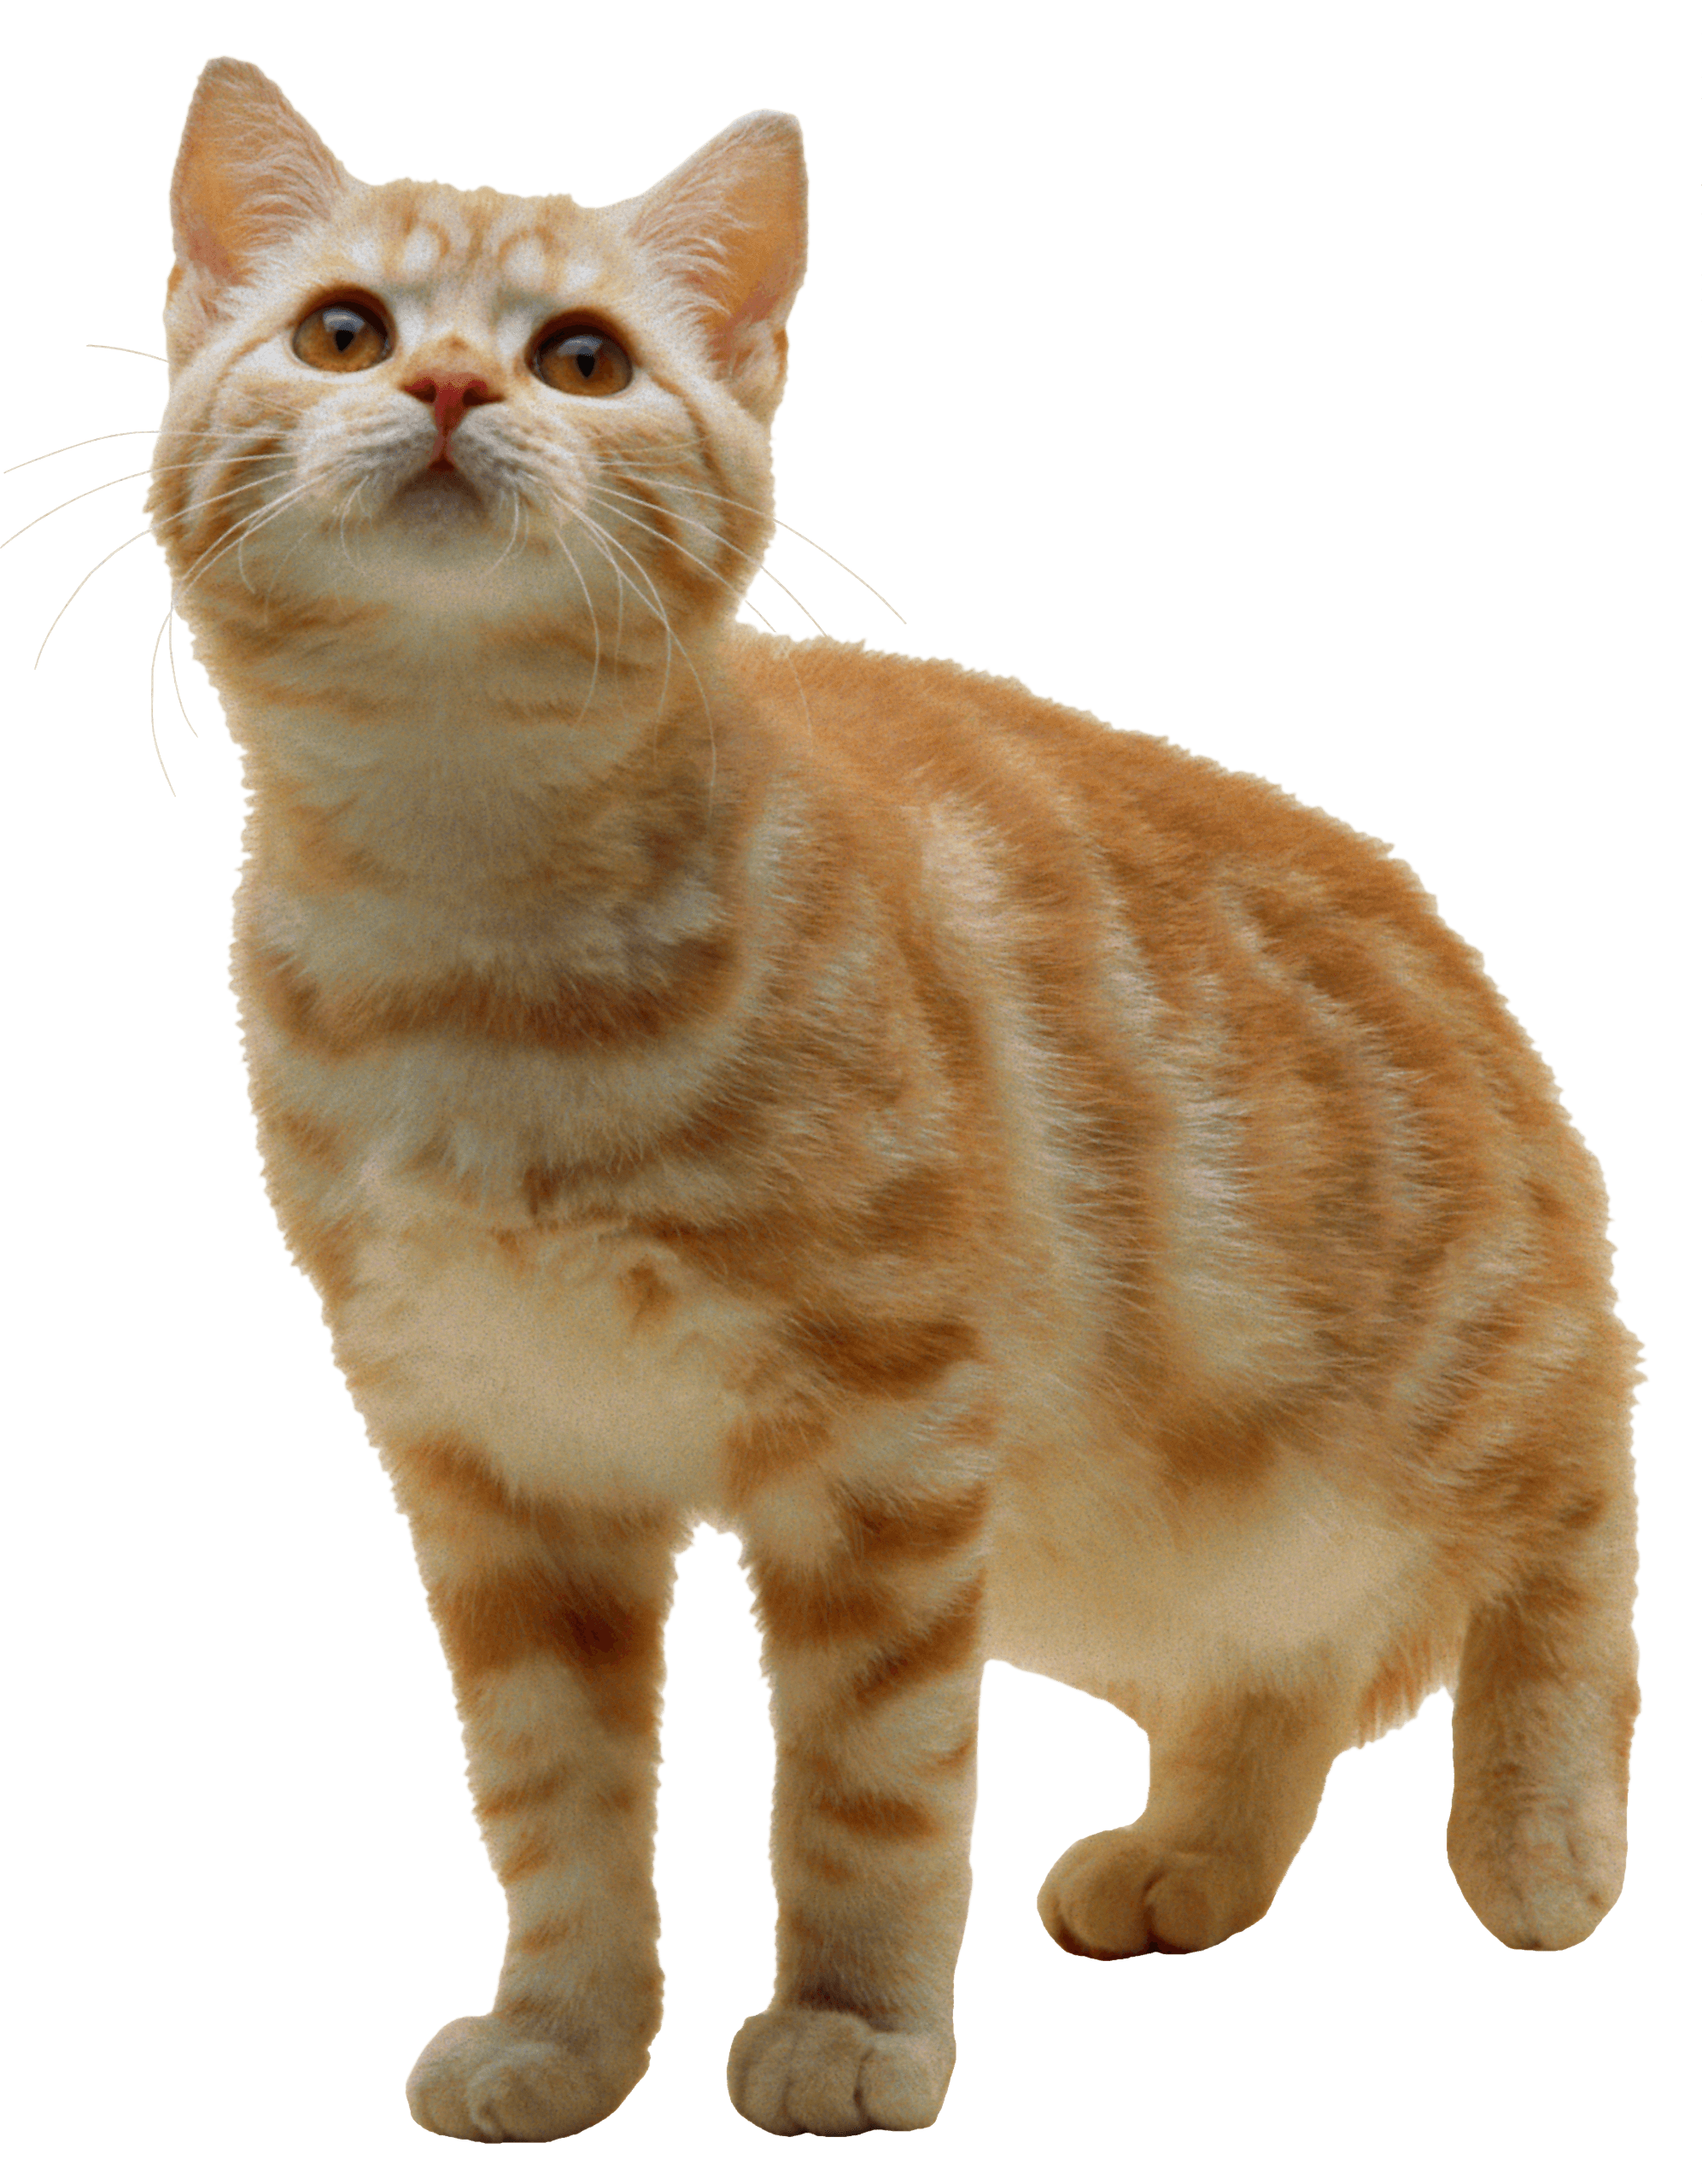 Orange kitten png